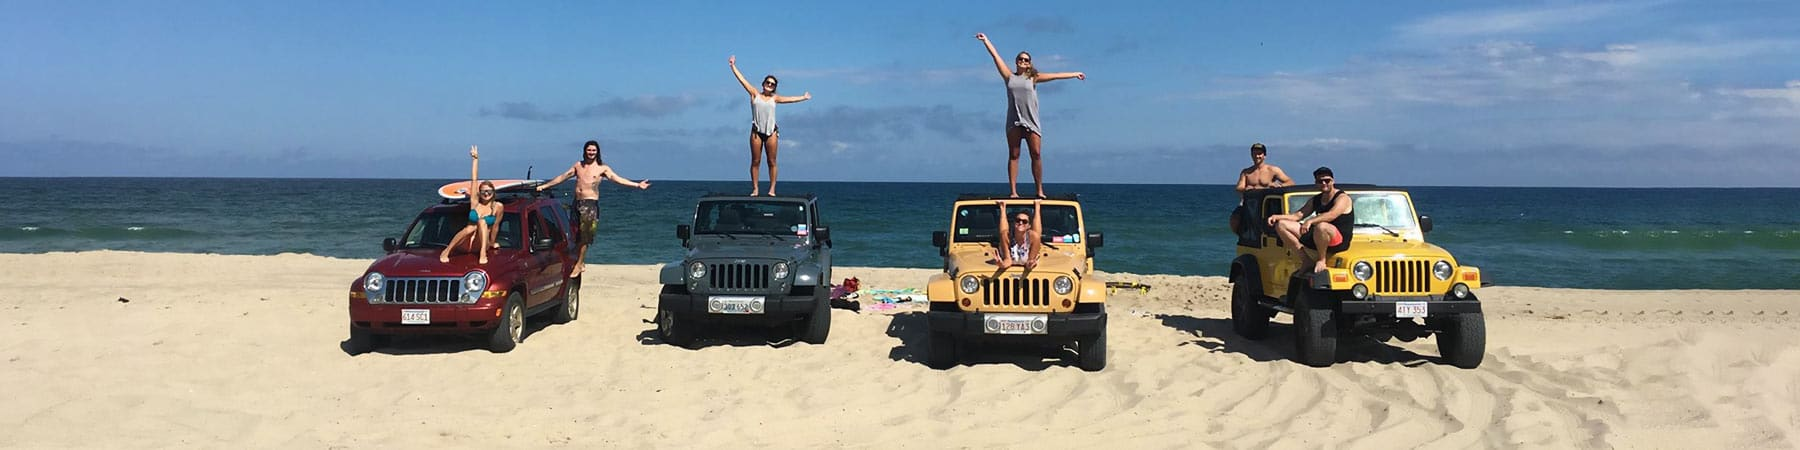 Jeep owners on beach with Jeeps